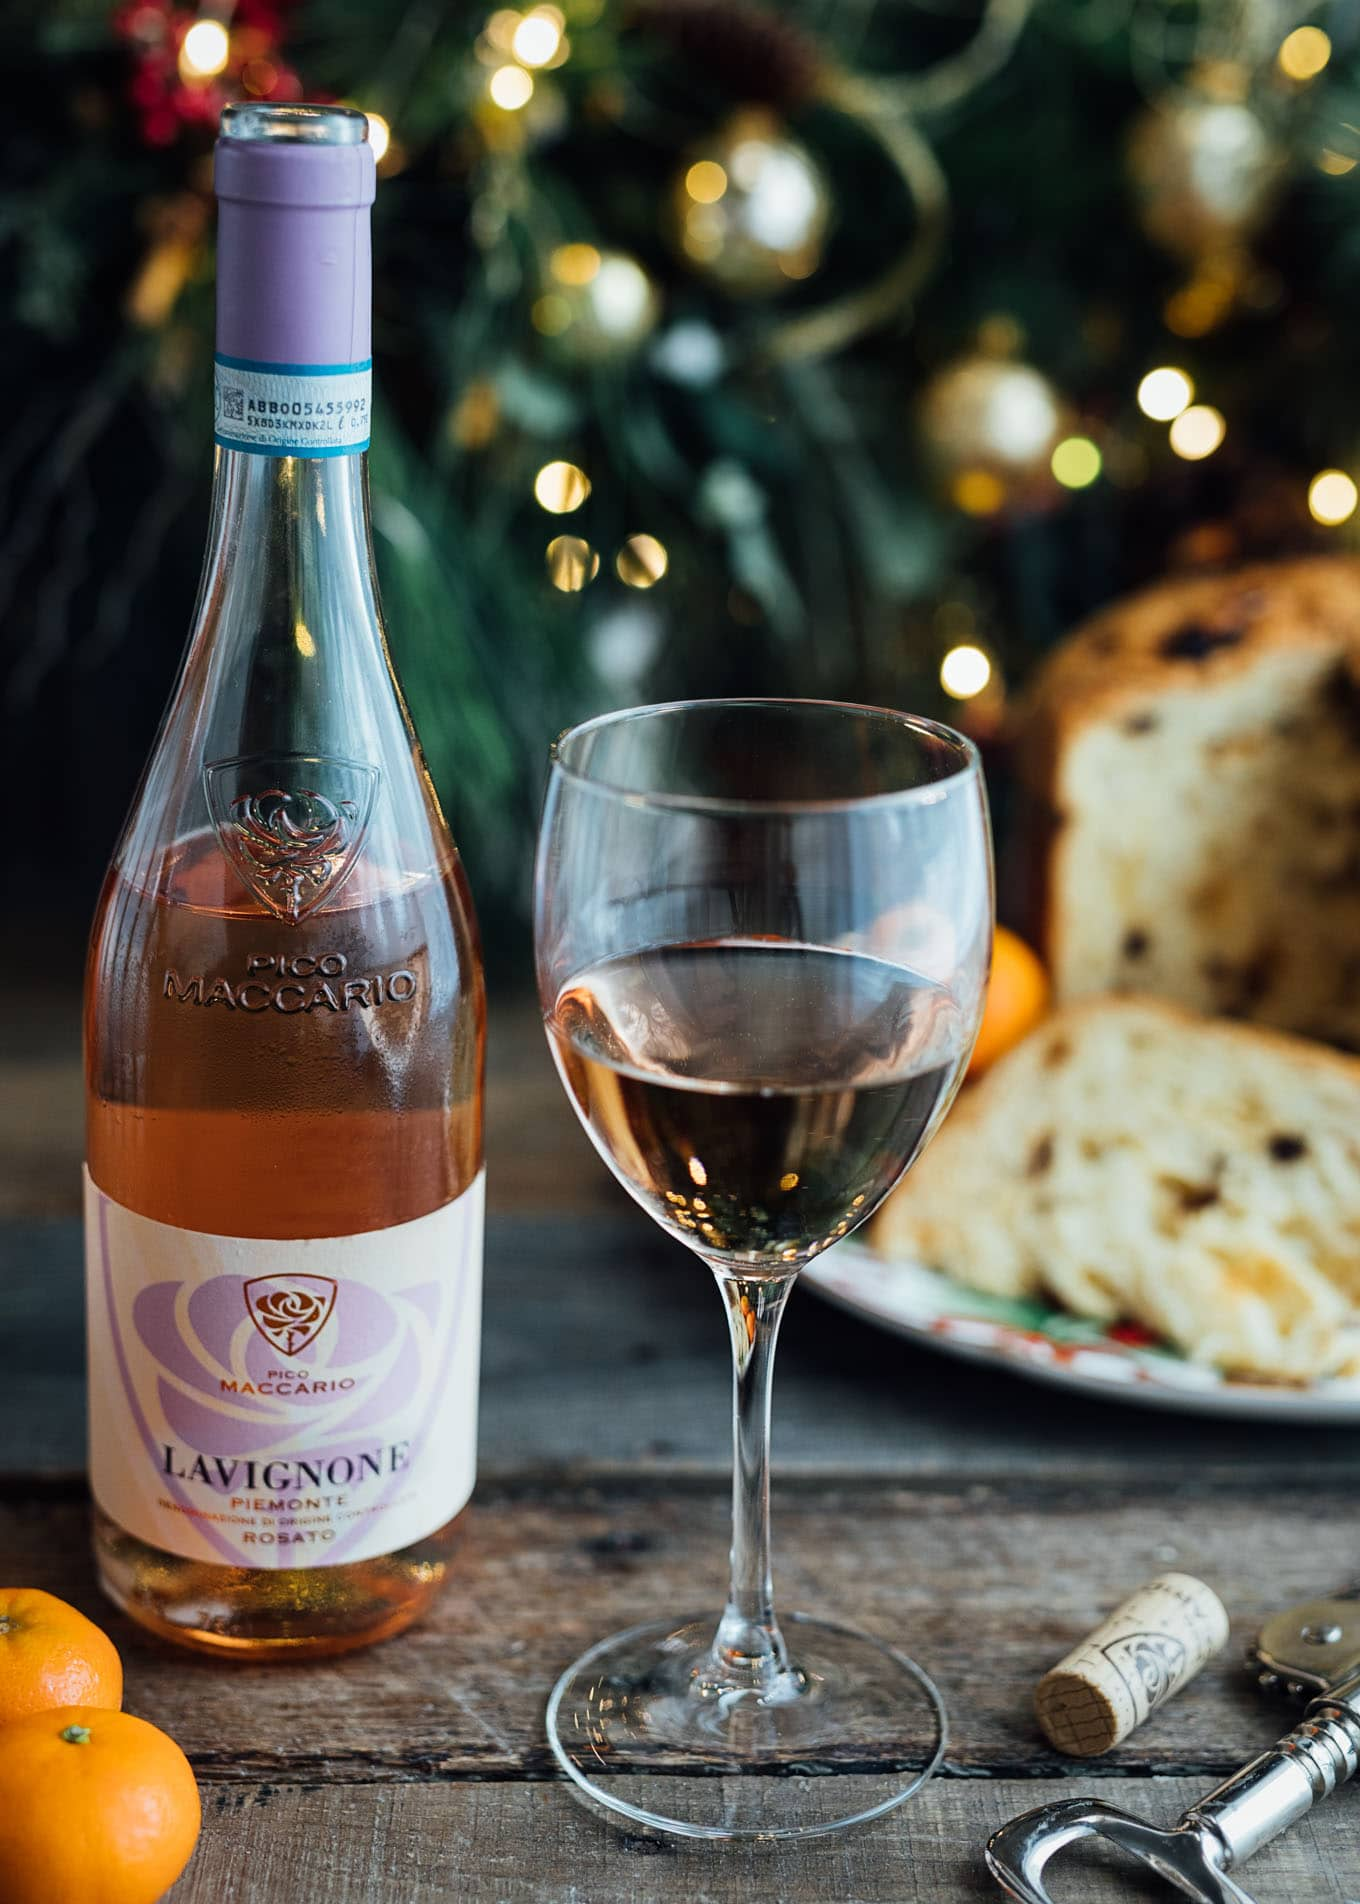 glass of Pico Maccario Barbera 'Lavignone' rose wine with a poured glass and panettone